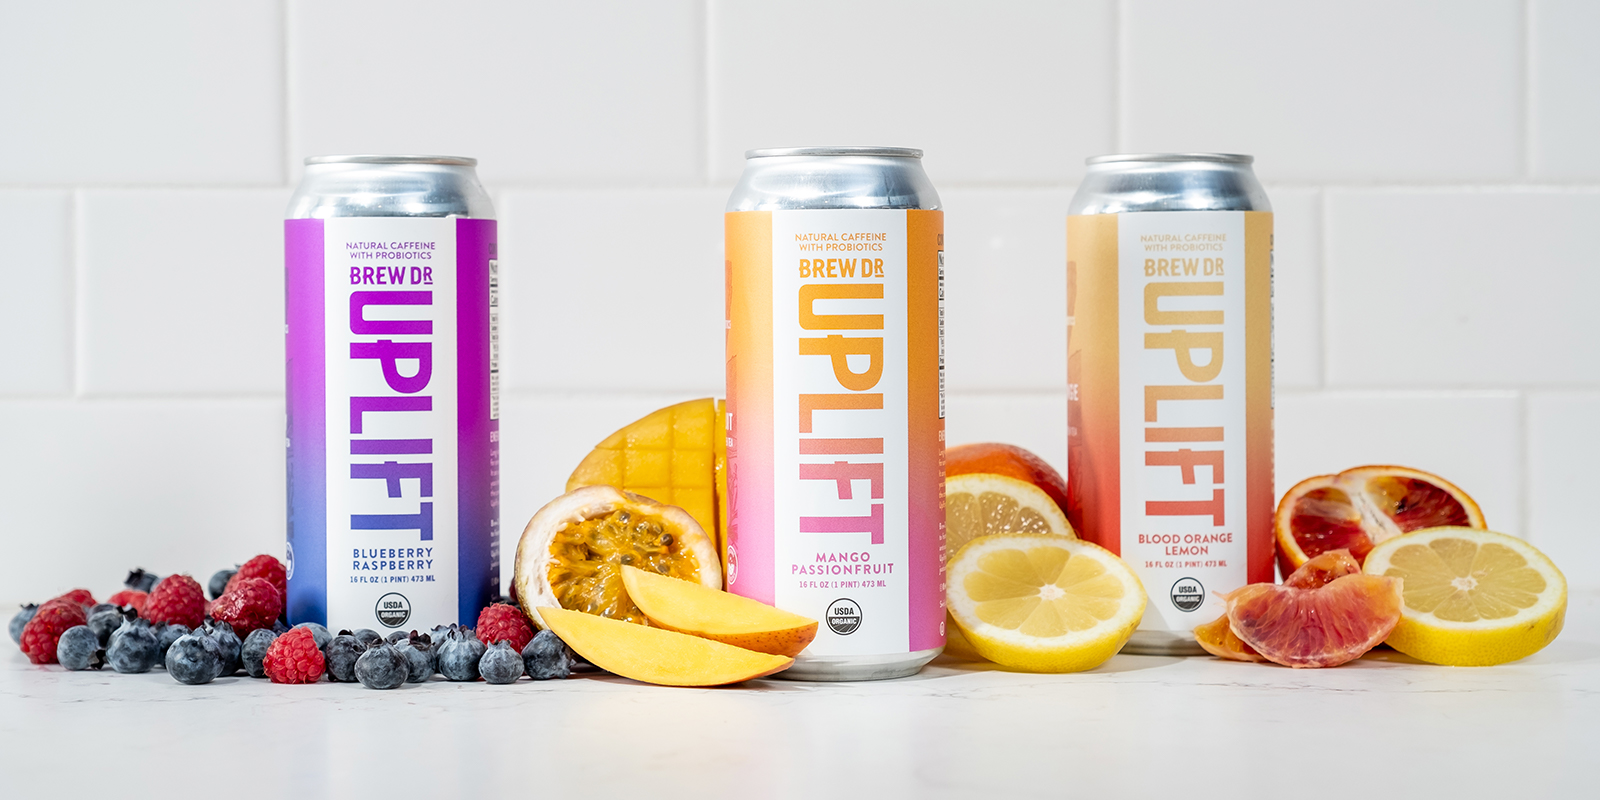 The three cans, Blueberry Raspberry, Mango Passionfruit, and Blood Orange Lemon, lined up on a counter surrounded by the fresh fruit that makes up their ingredients. Each has a white front panel with knocked-out vertical version of the Uplift logo so the gradient behind, which wraps around the whole can, shows through. The Blueberry Raspberry gradient is a dark blue to purple, the Mango Passionfruit a pink to orange, and the Blood Orange Lemon a red-orange to yellow.